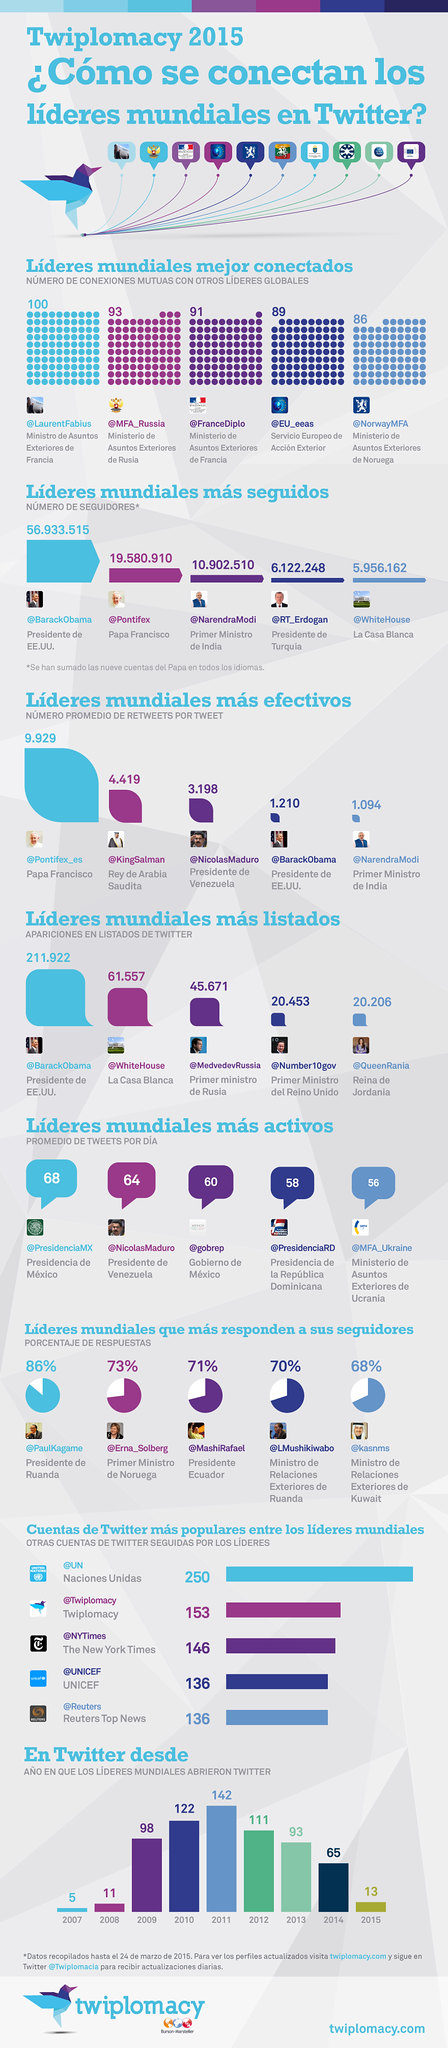 Twiplomacy_2015_Global_Infographic_Spanish (1)